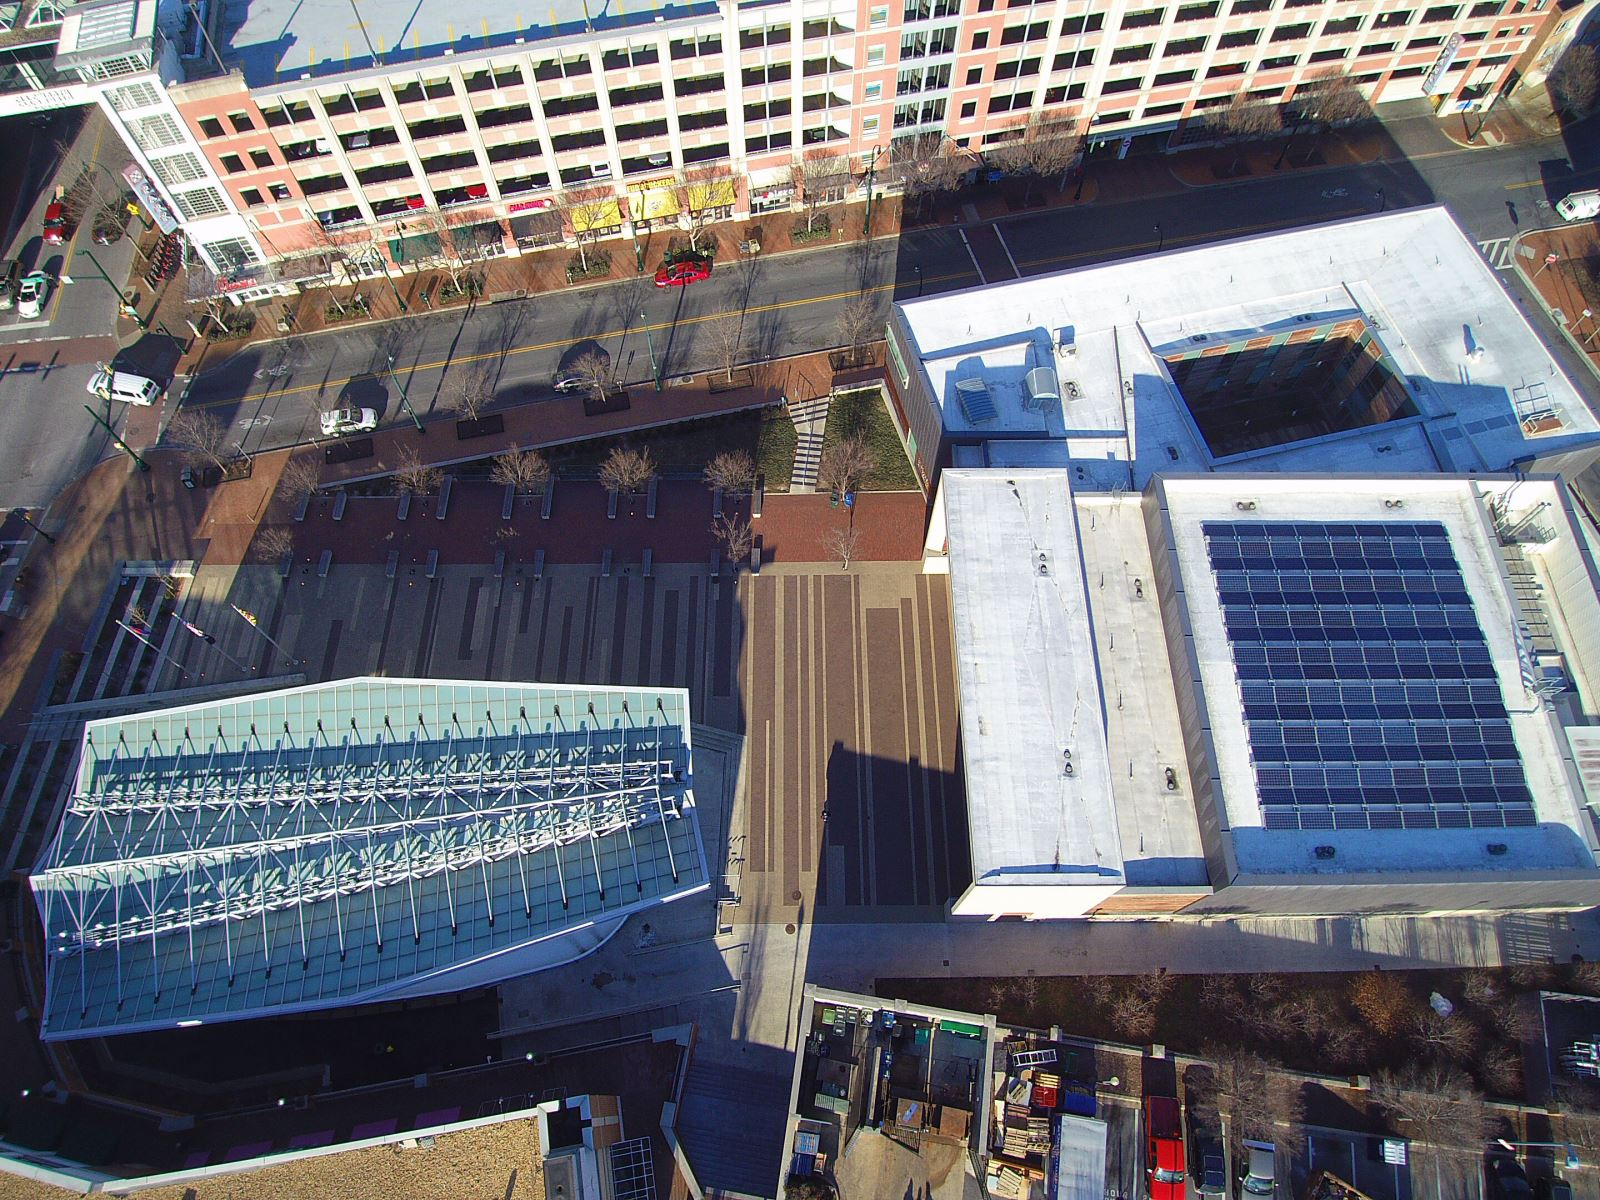 Solar Panels at Silver Spring Civic Center